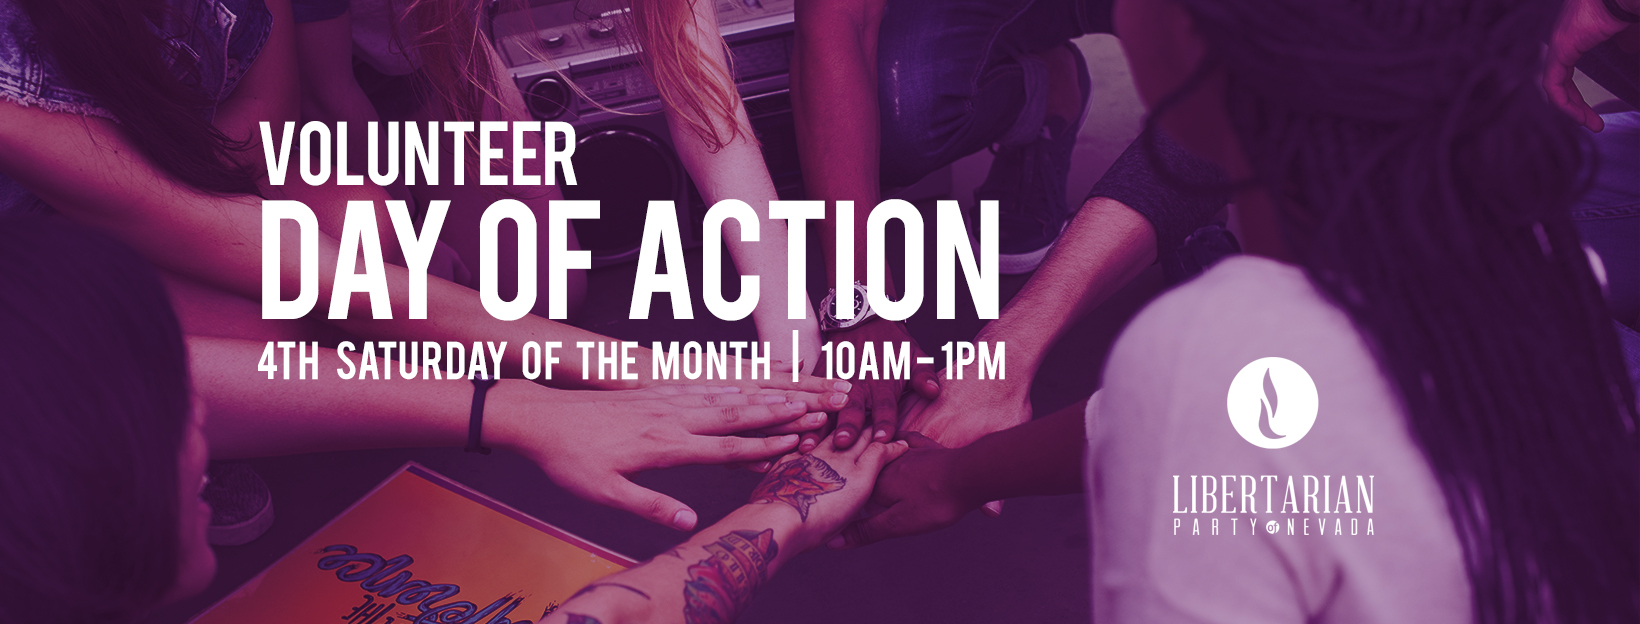 Day_Of_Action_Banner_2.jpg